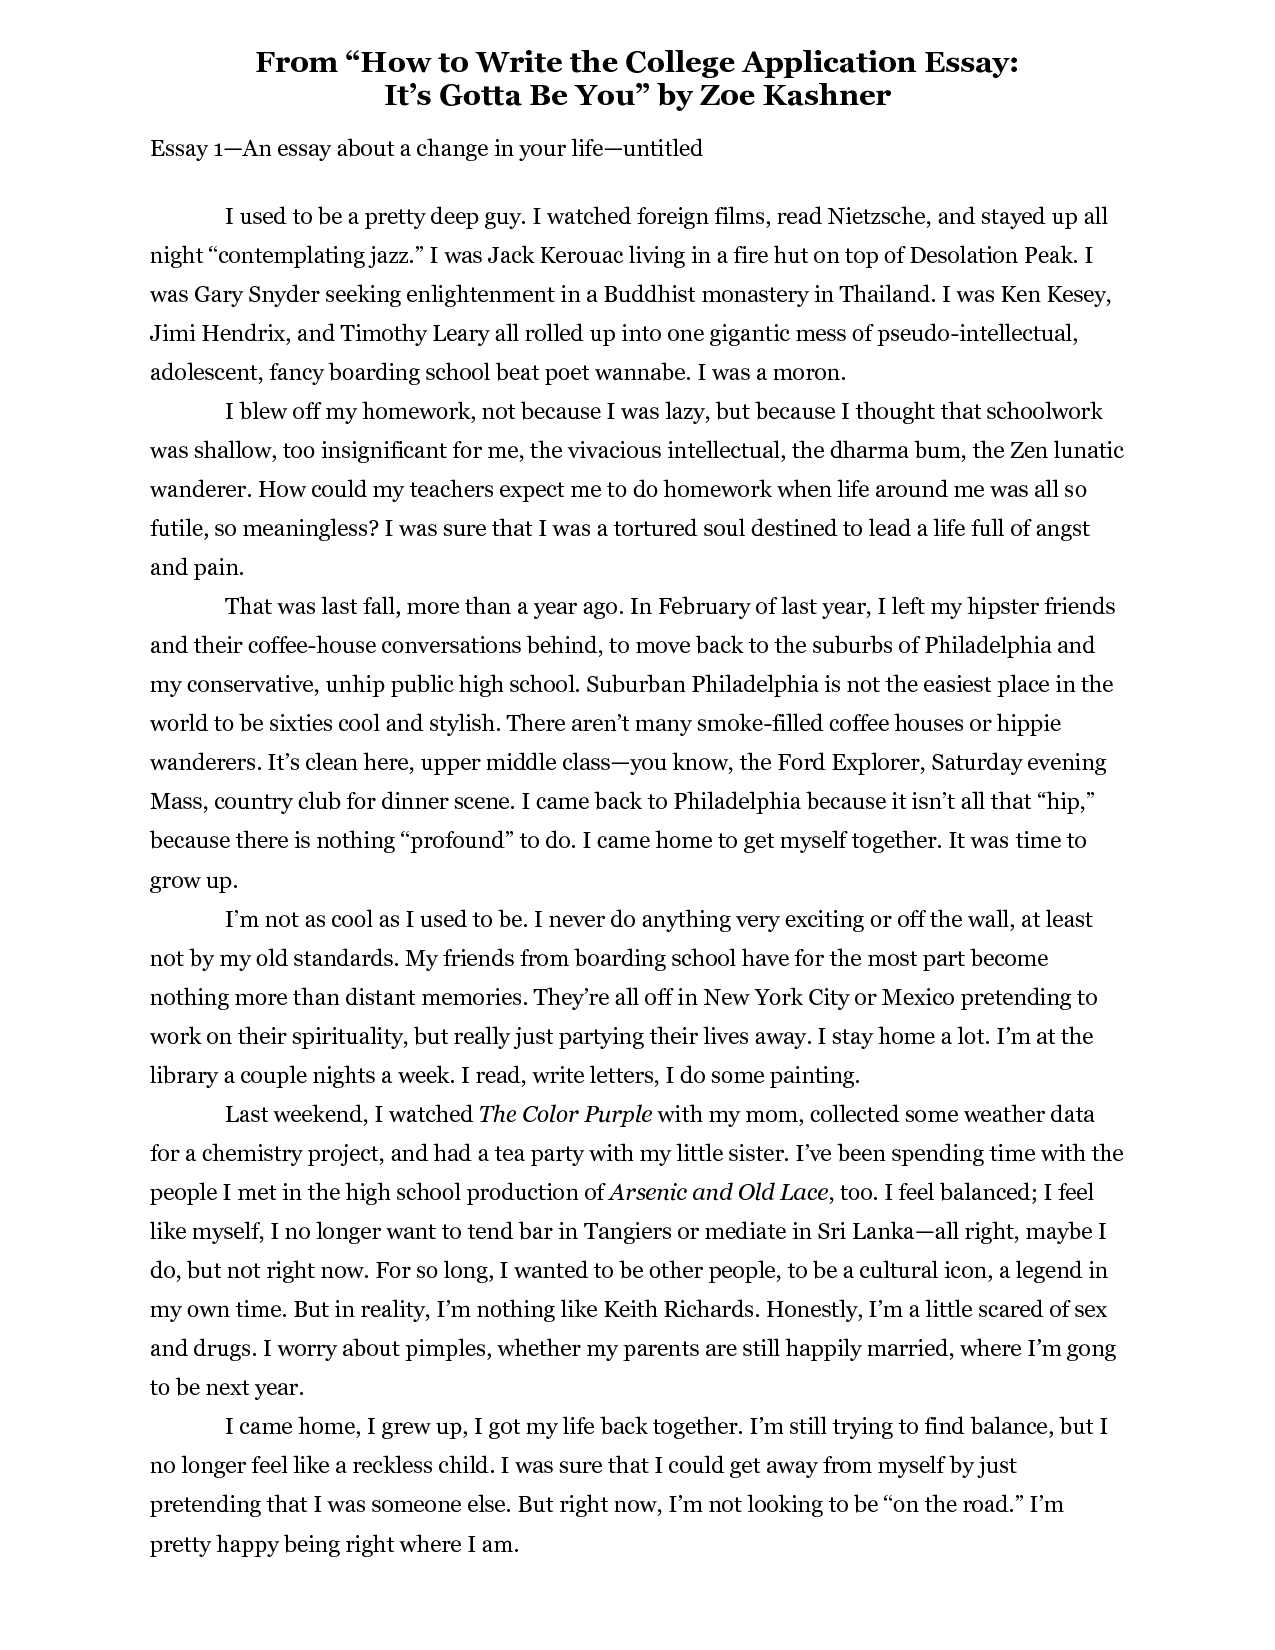 009 how to start an essay about myself example